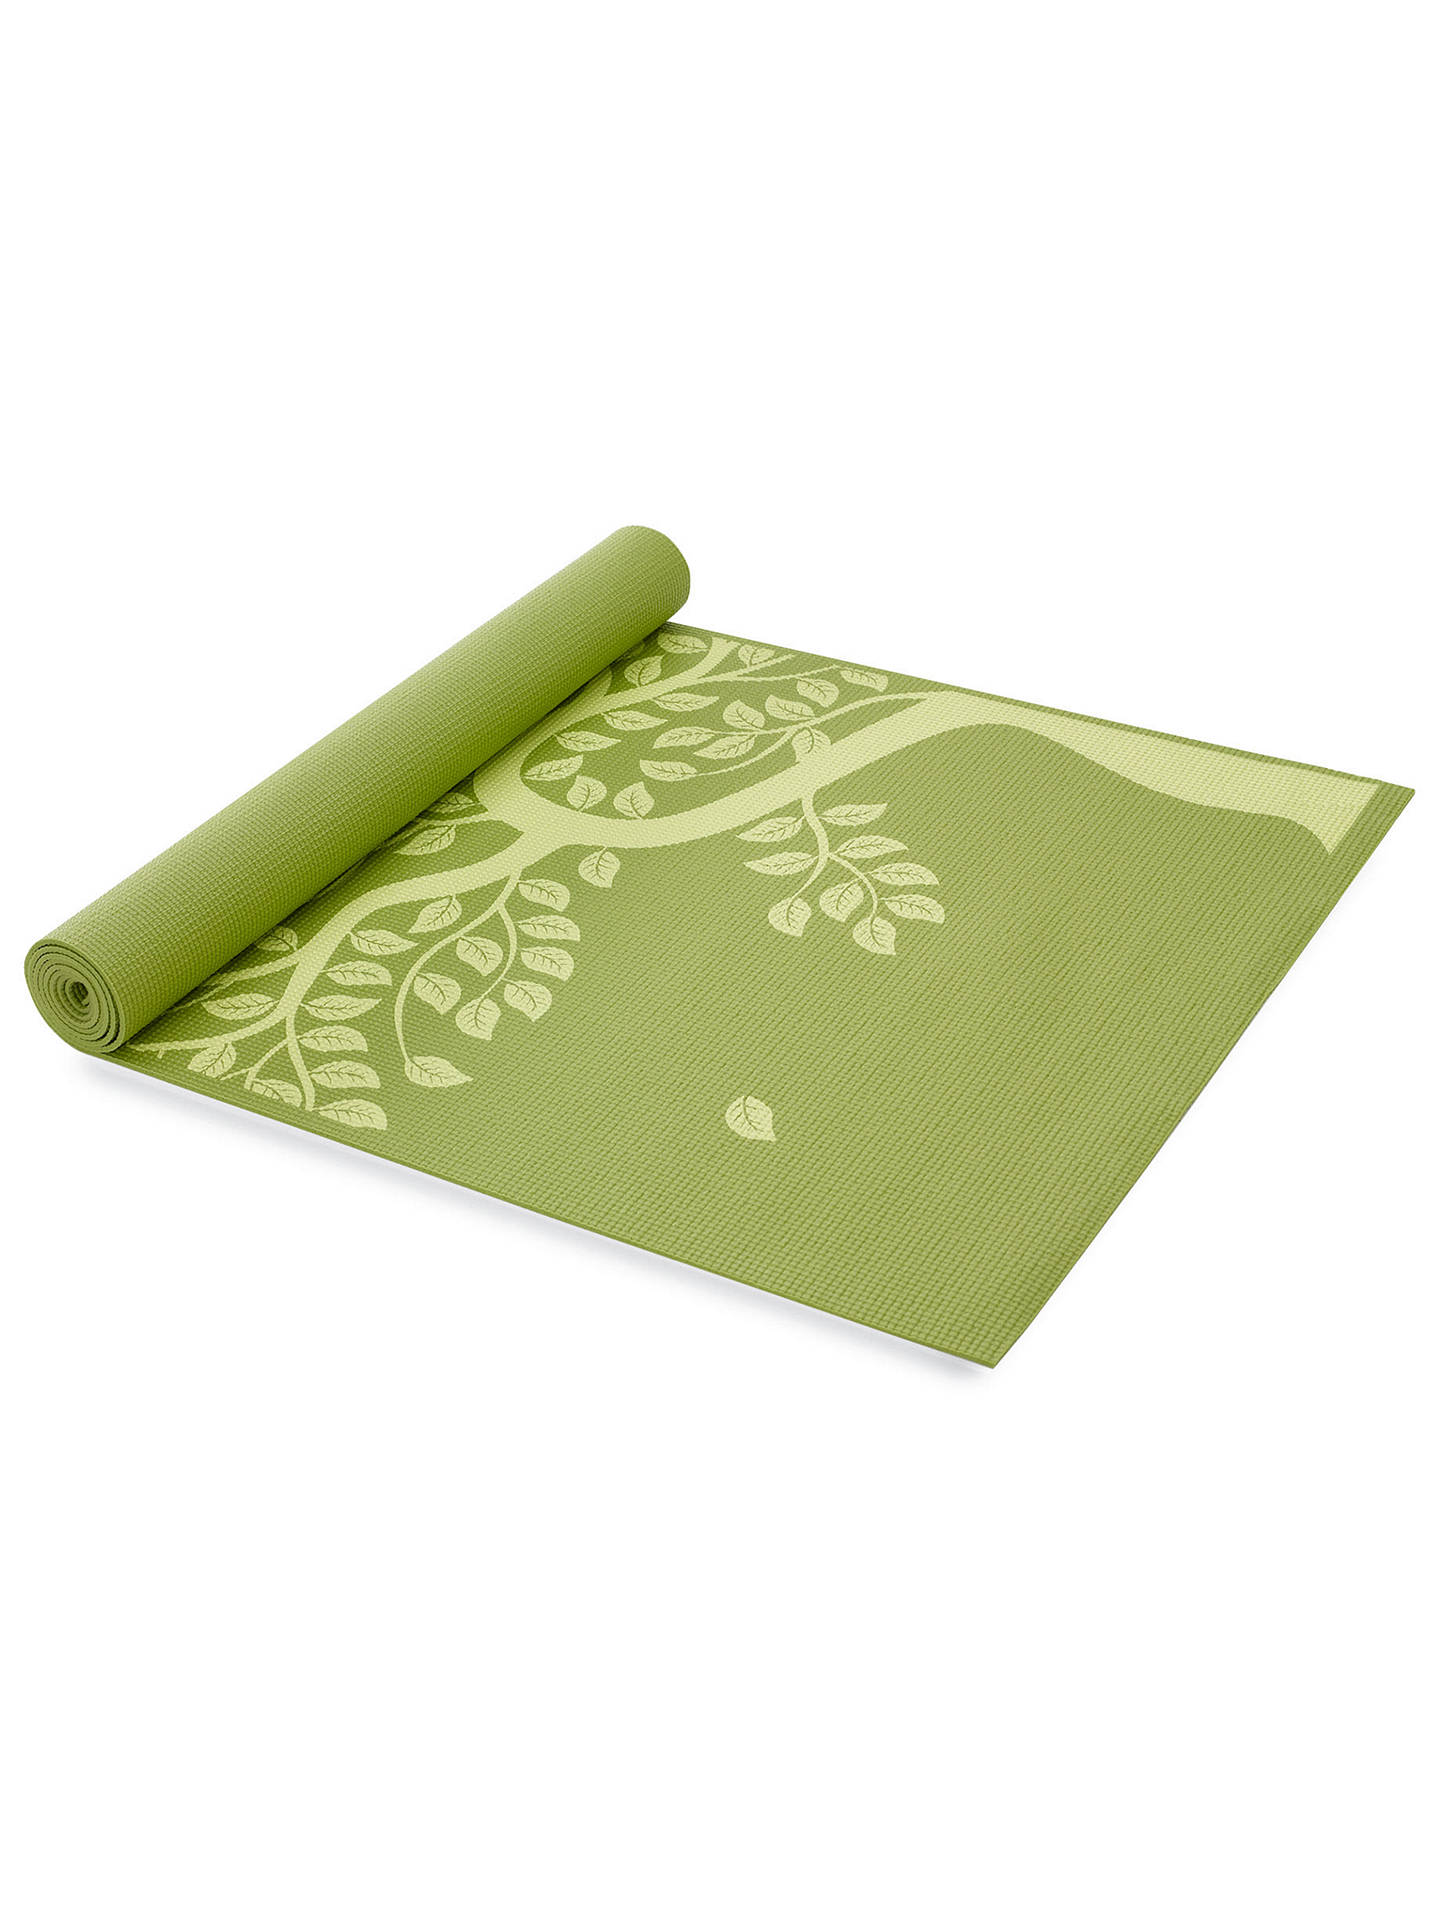 Buy Gaiam Tree of Life Printed 3mm Yoga Mat, Green Online at johnlewis.com